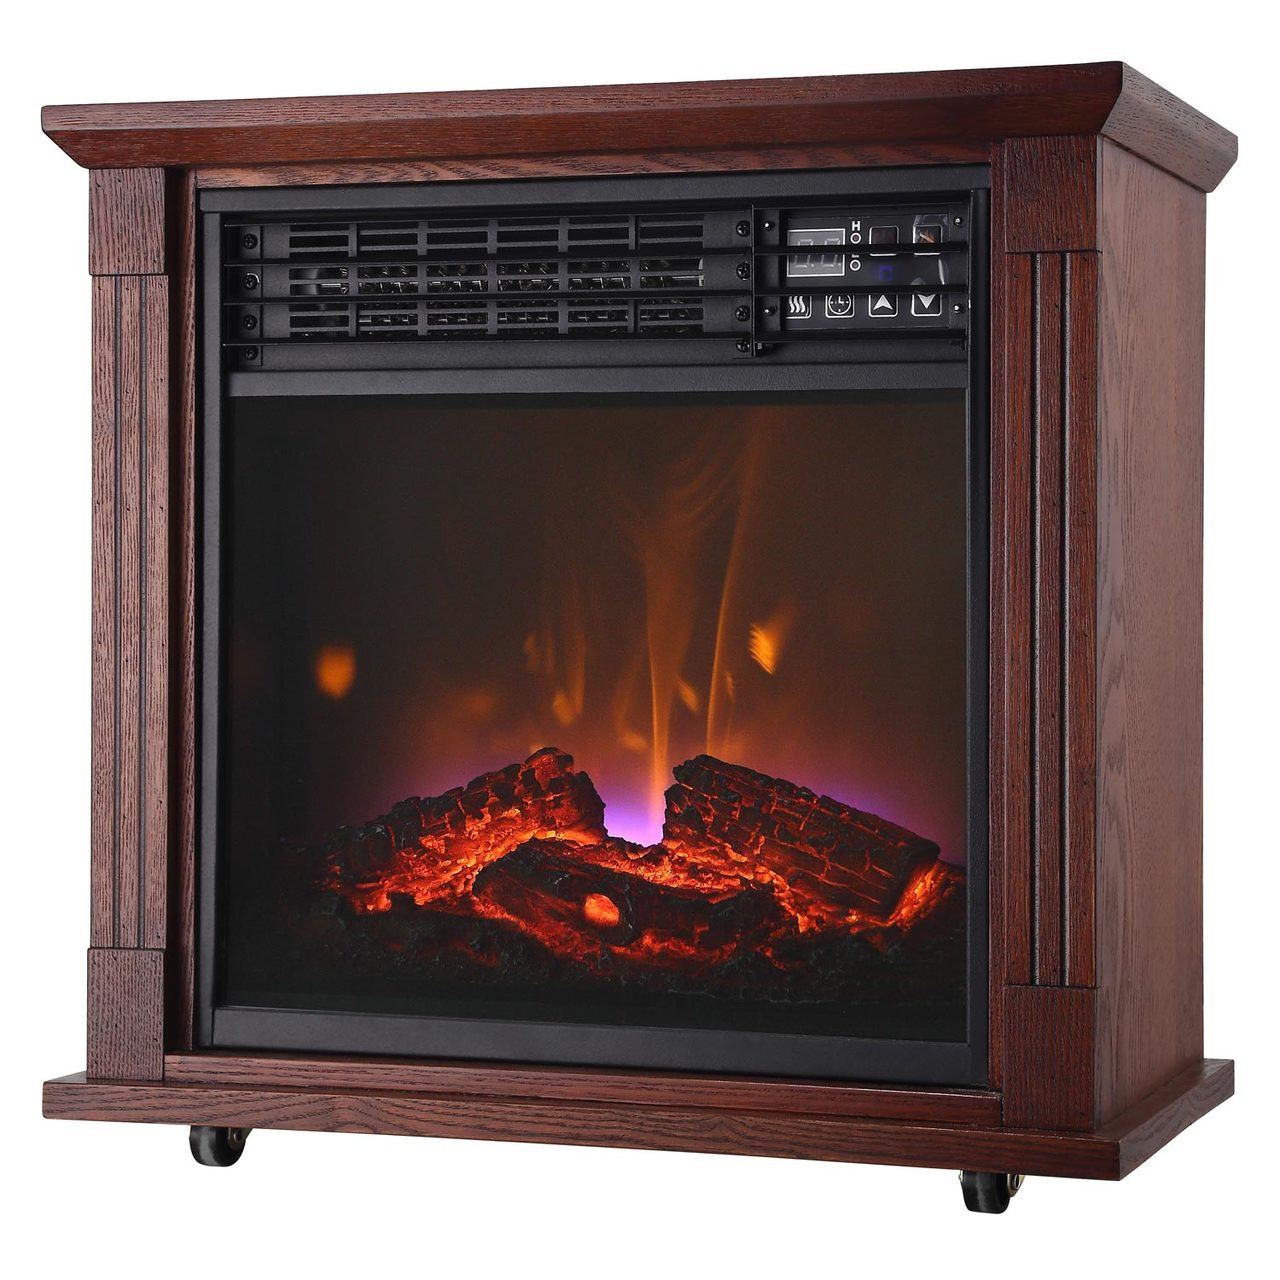 Wondrous Comfort Glow Qf4544R Mobile Quartz Electric Fireplace With Real Flame Technology Home Remodeling Inspirations Genioncuboardxyz